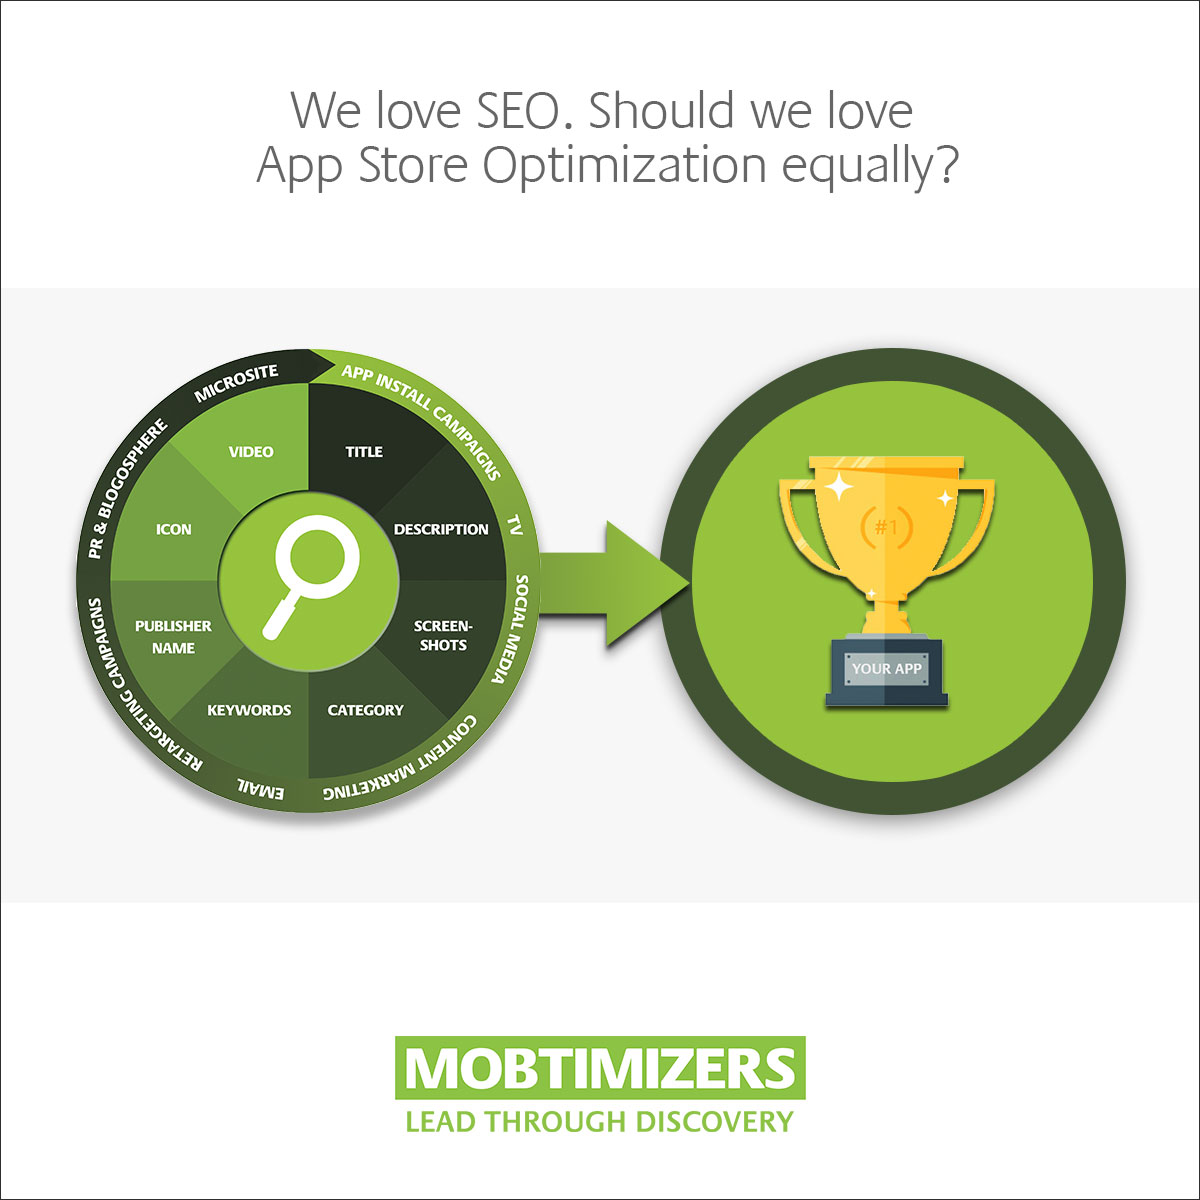 We Love ASO, Should We Love ASO Equally (App Store Optimization)?